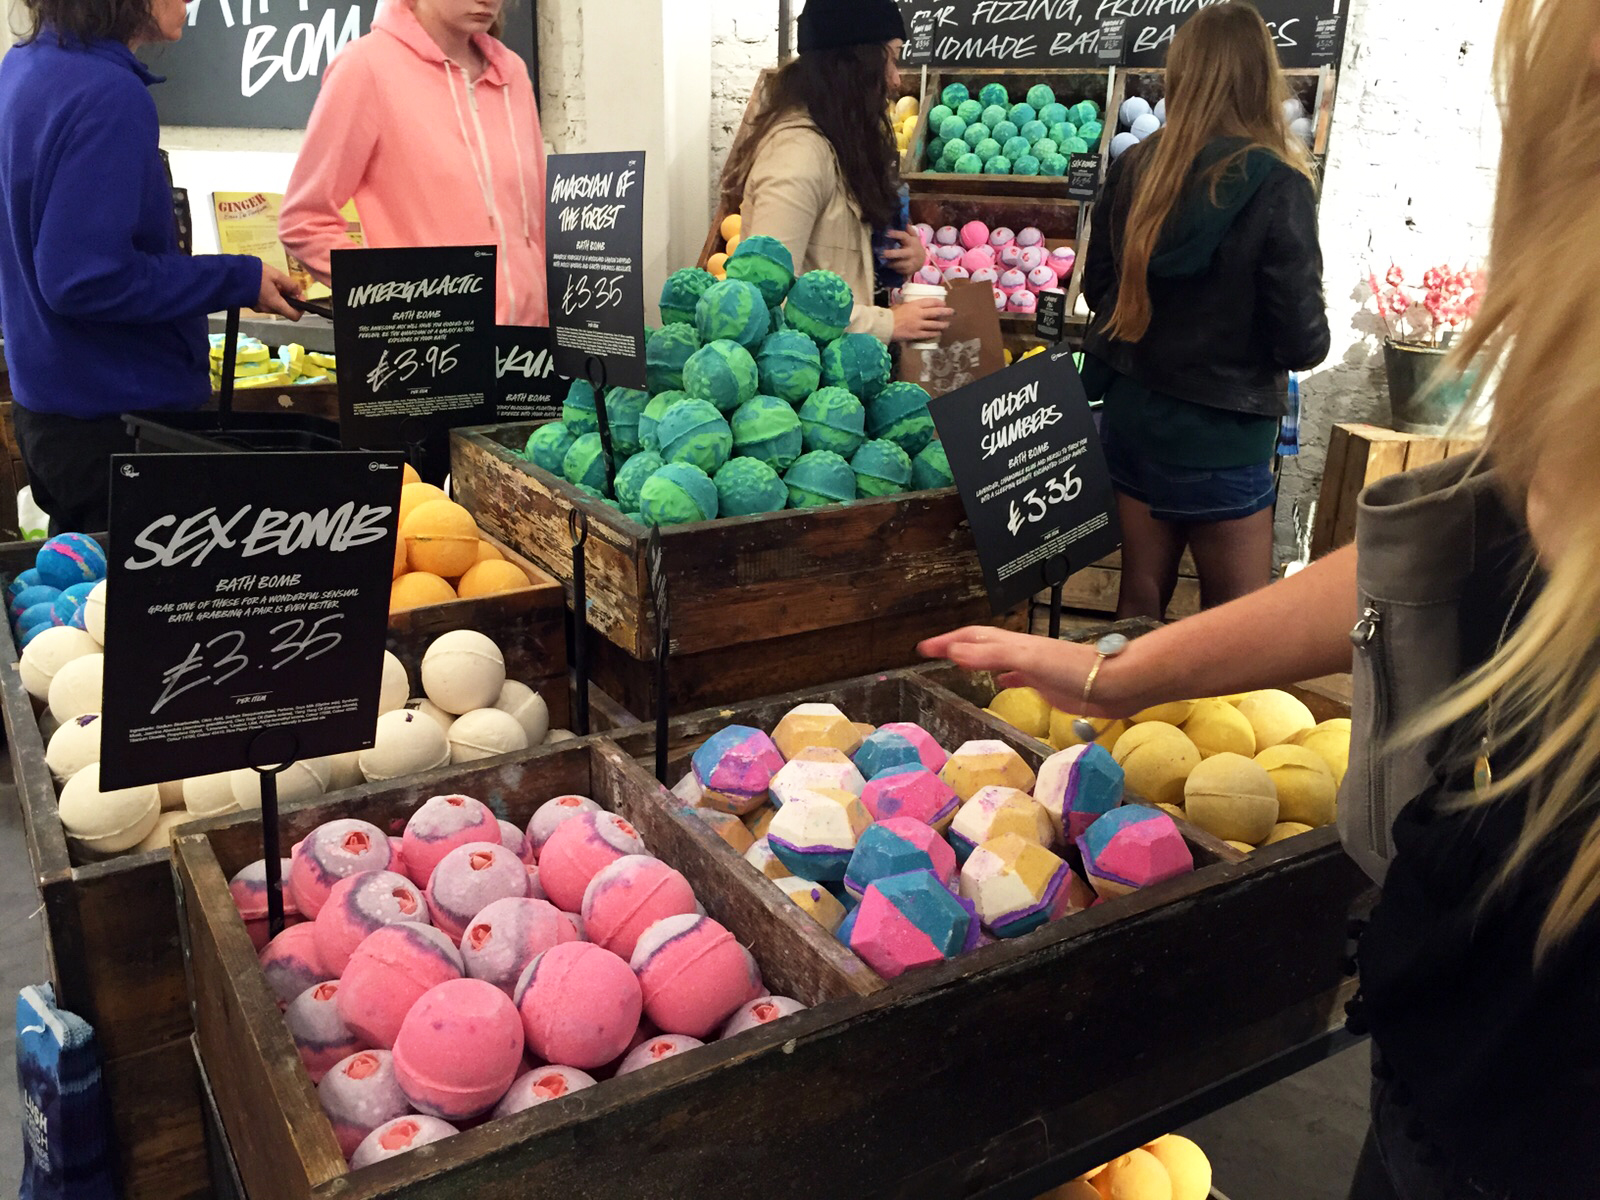 Lush Cosmetics Haul & London Oxford Street Store plus Exclusive Products // Beauty // Lauren Rose